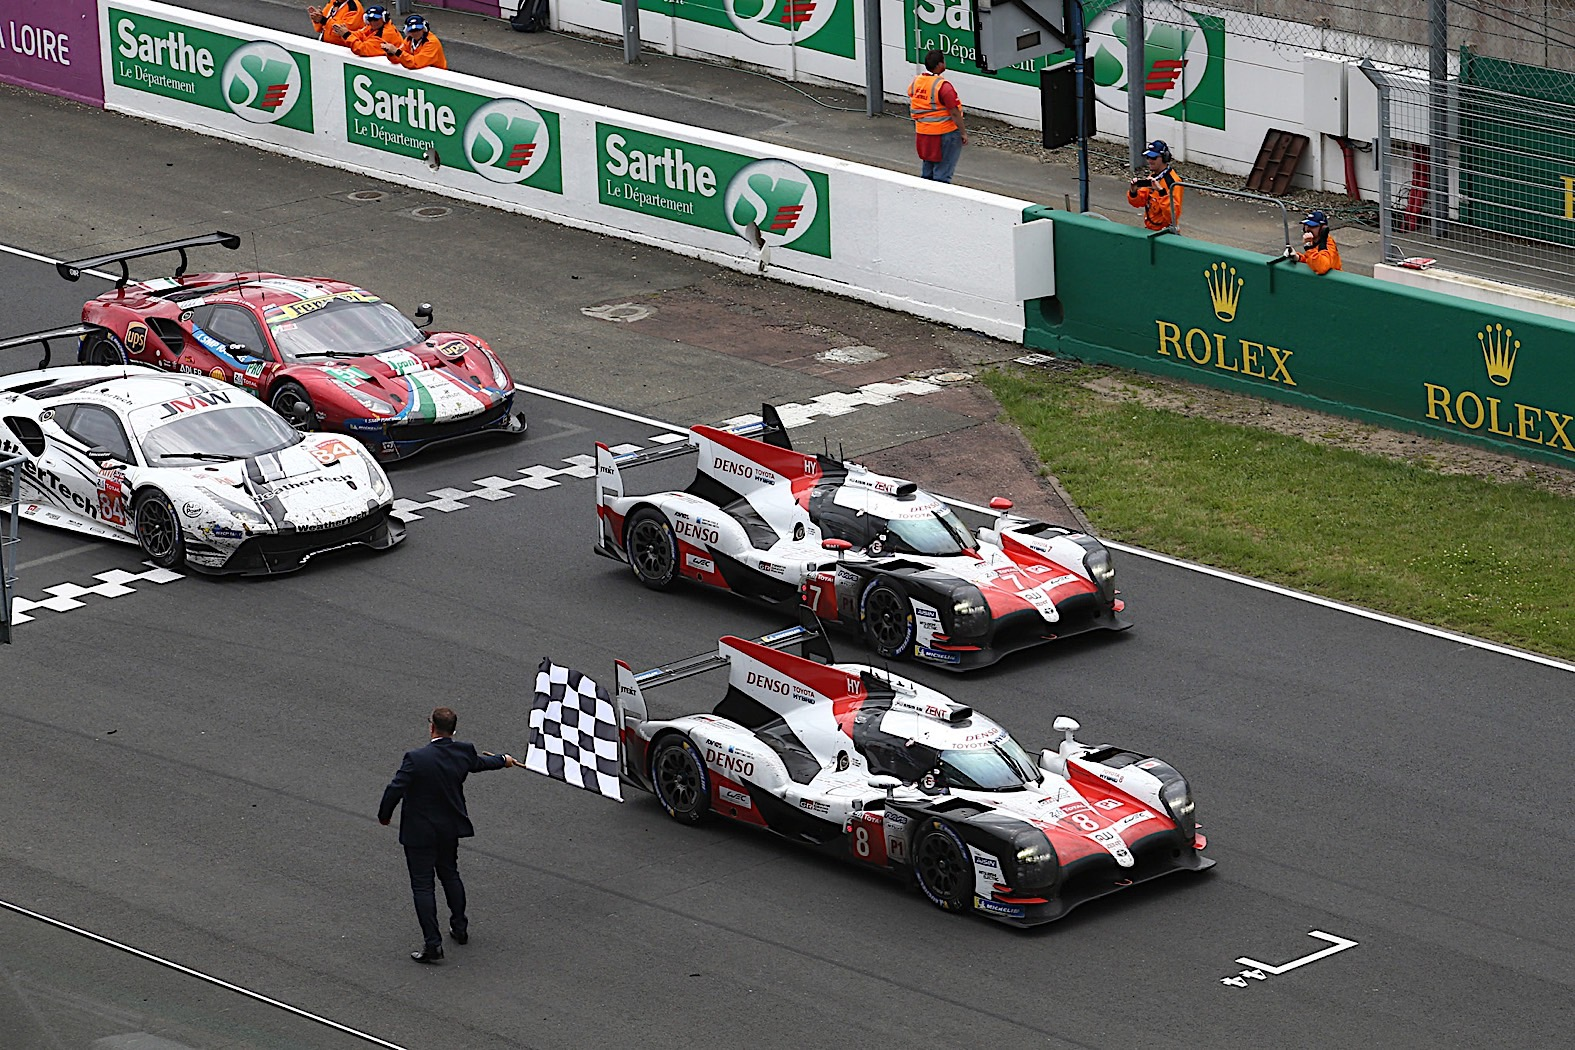 Fernando Alonso and Toyota win Le Mans 24 hour race